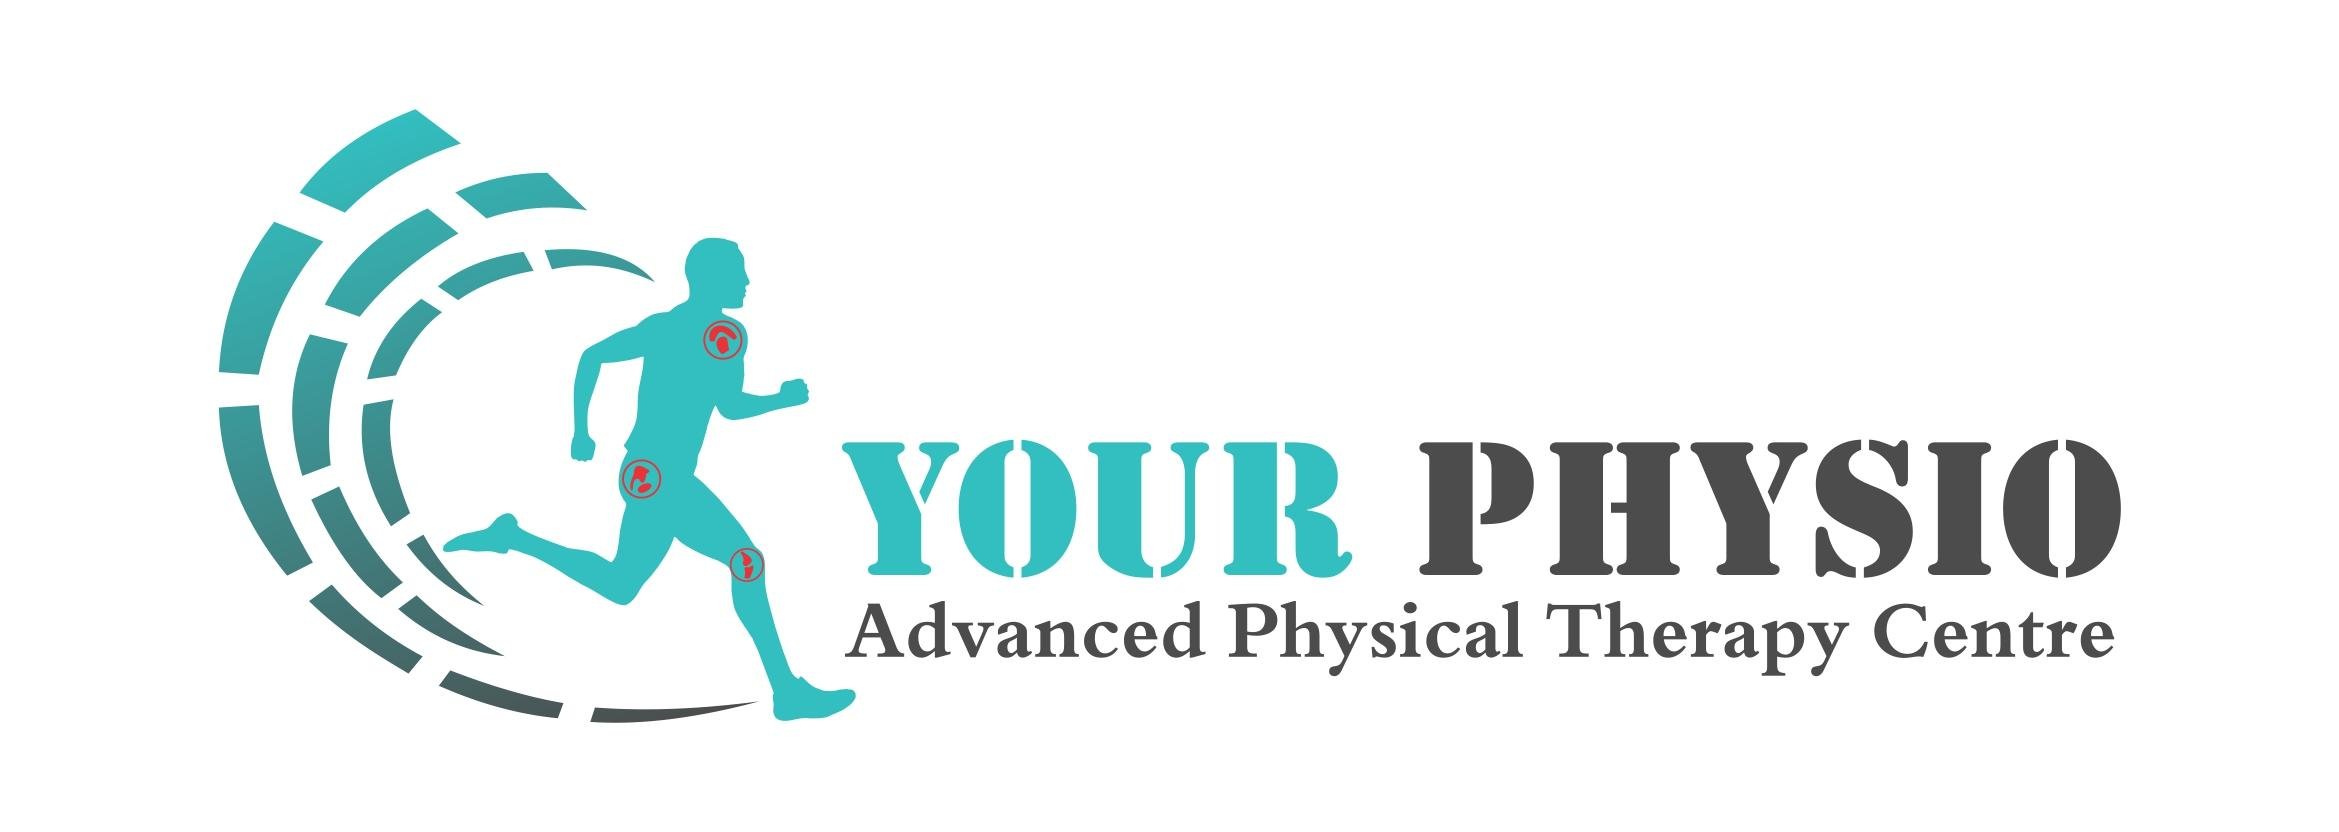 Your Physio - Advanced Physical Therapy Centre